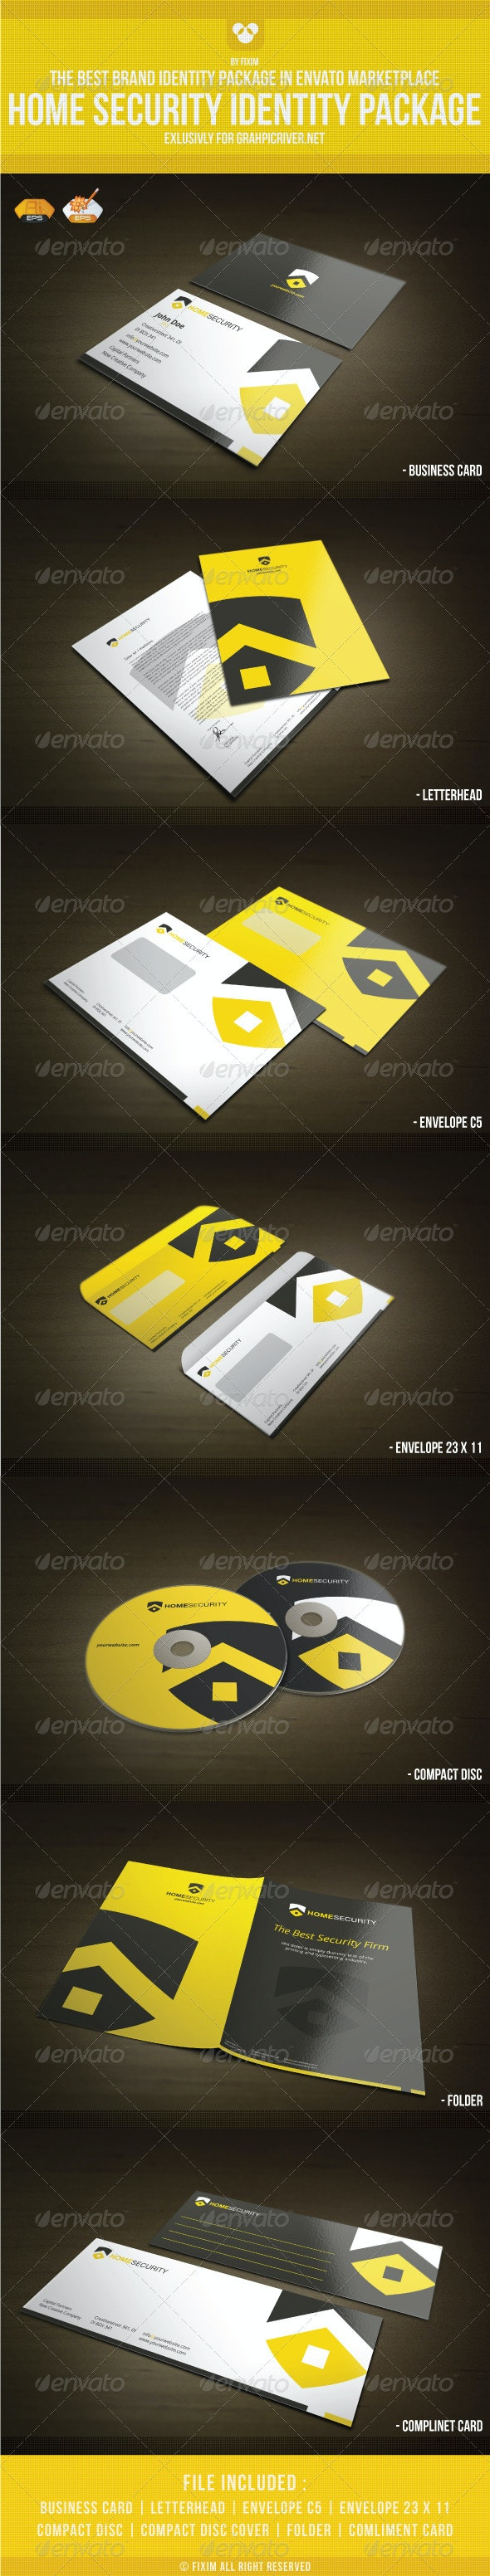 Home Security Identity Package - Stationery Print Templates